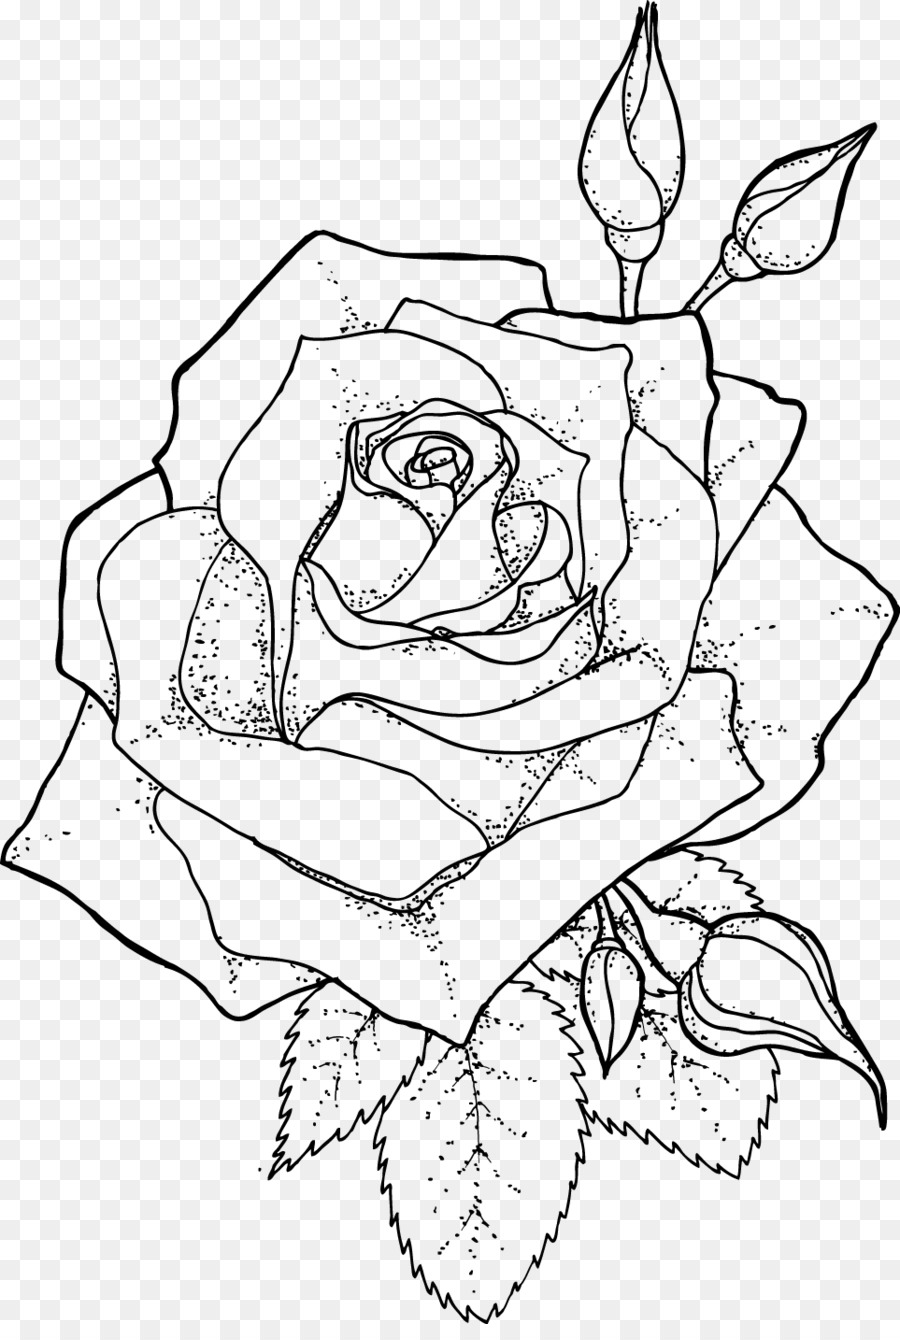 Drawing Line art Coloring book - rose outline png download - 963 ...